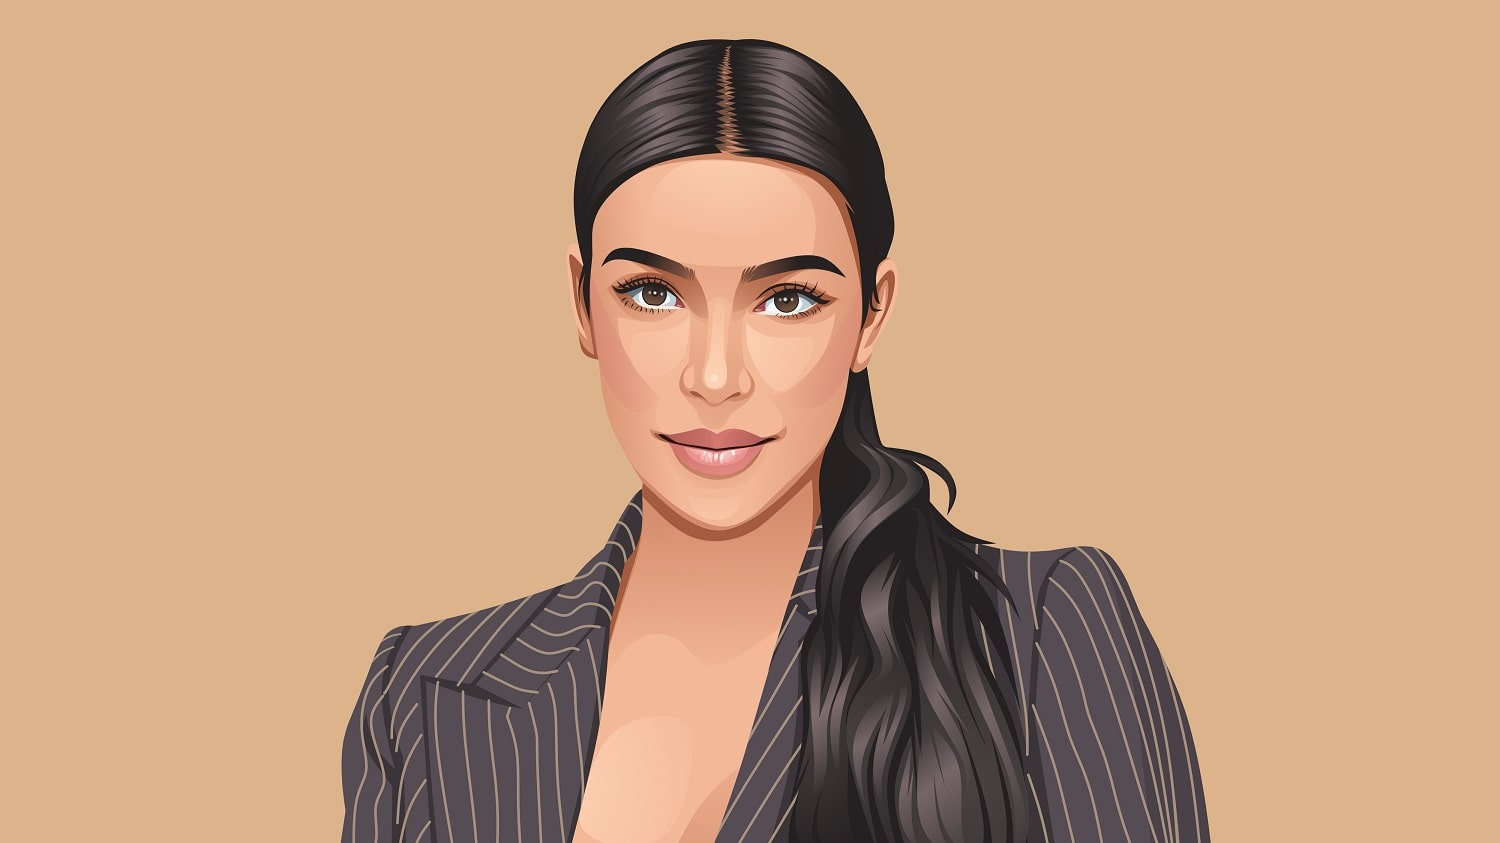 Kim kardasian Copyright by Inspirationfeed.